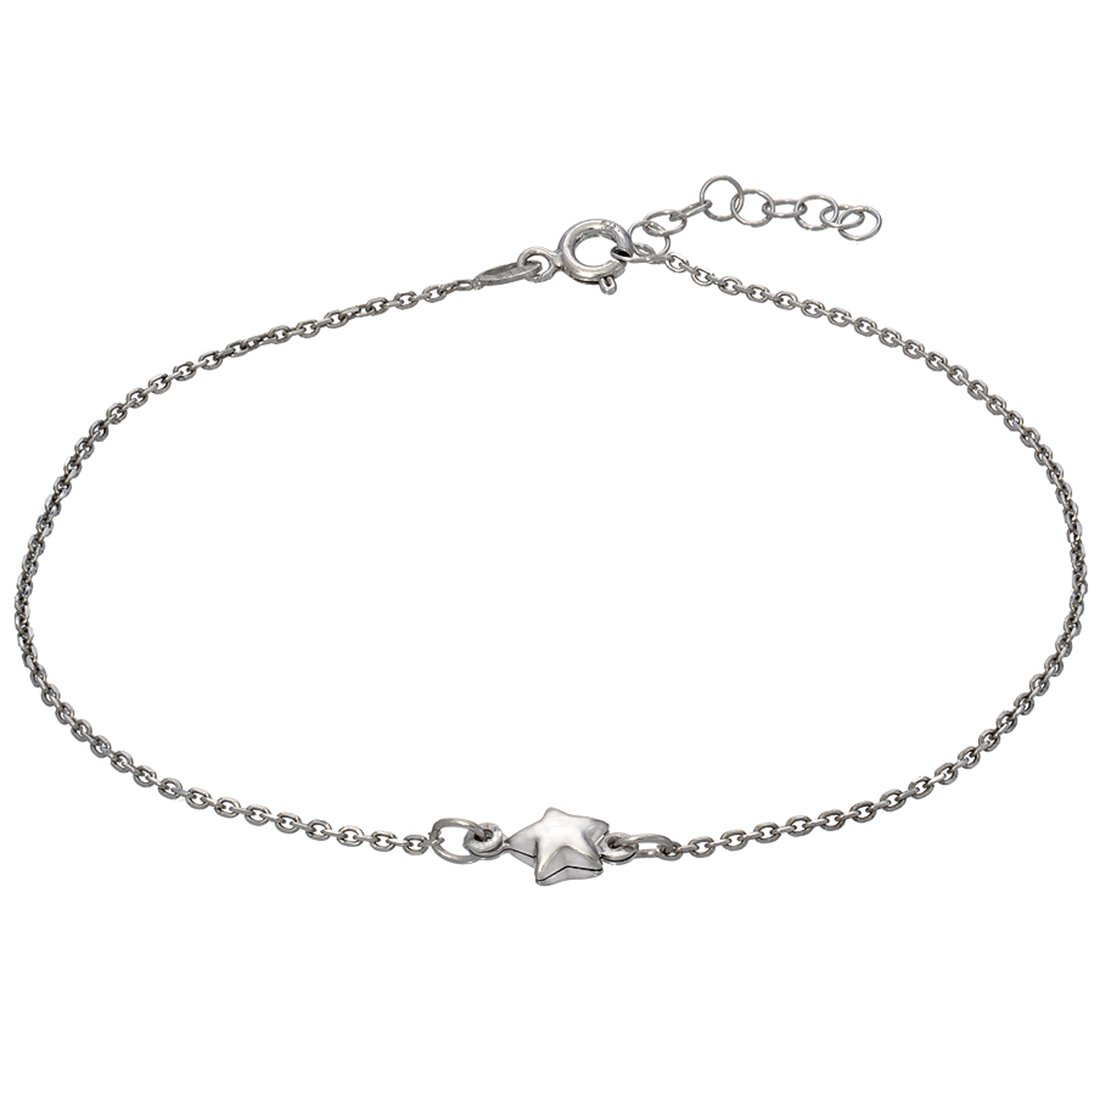 9 with 1 Extension D Jewelry 925 Sterling Silver Puff Star Anklet Bracelet Made in Italy